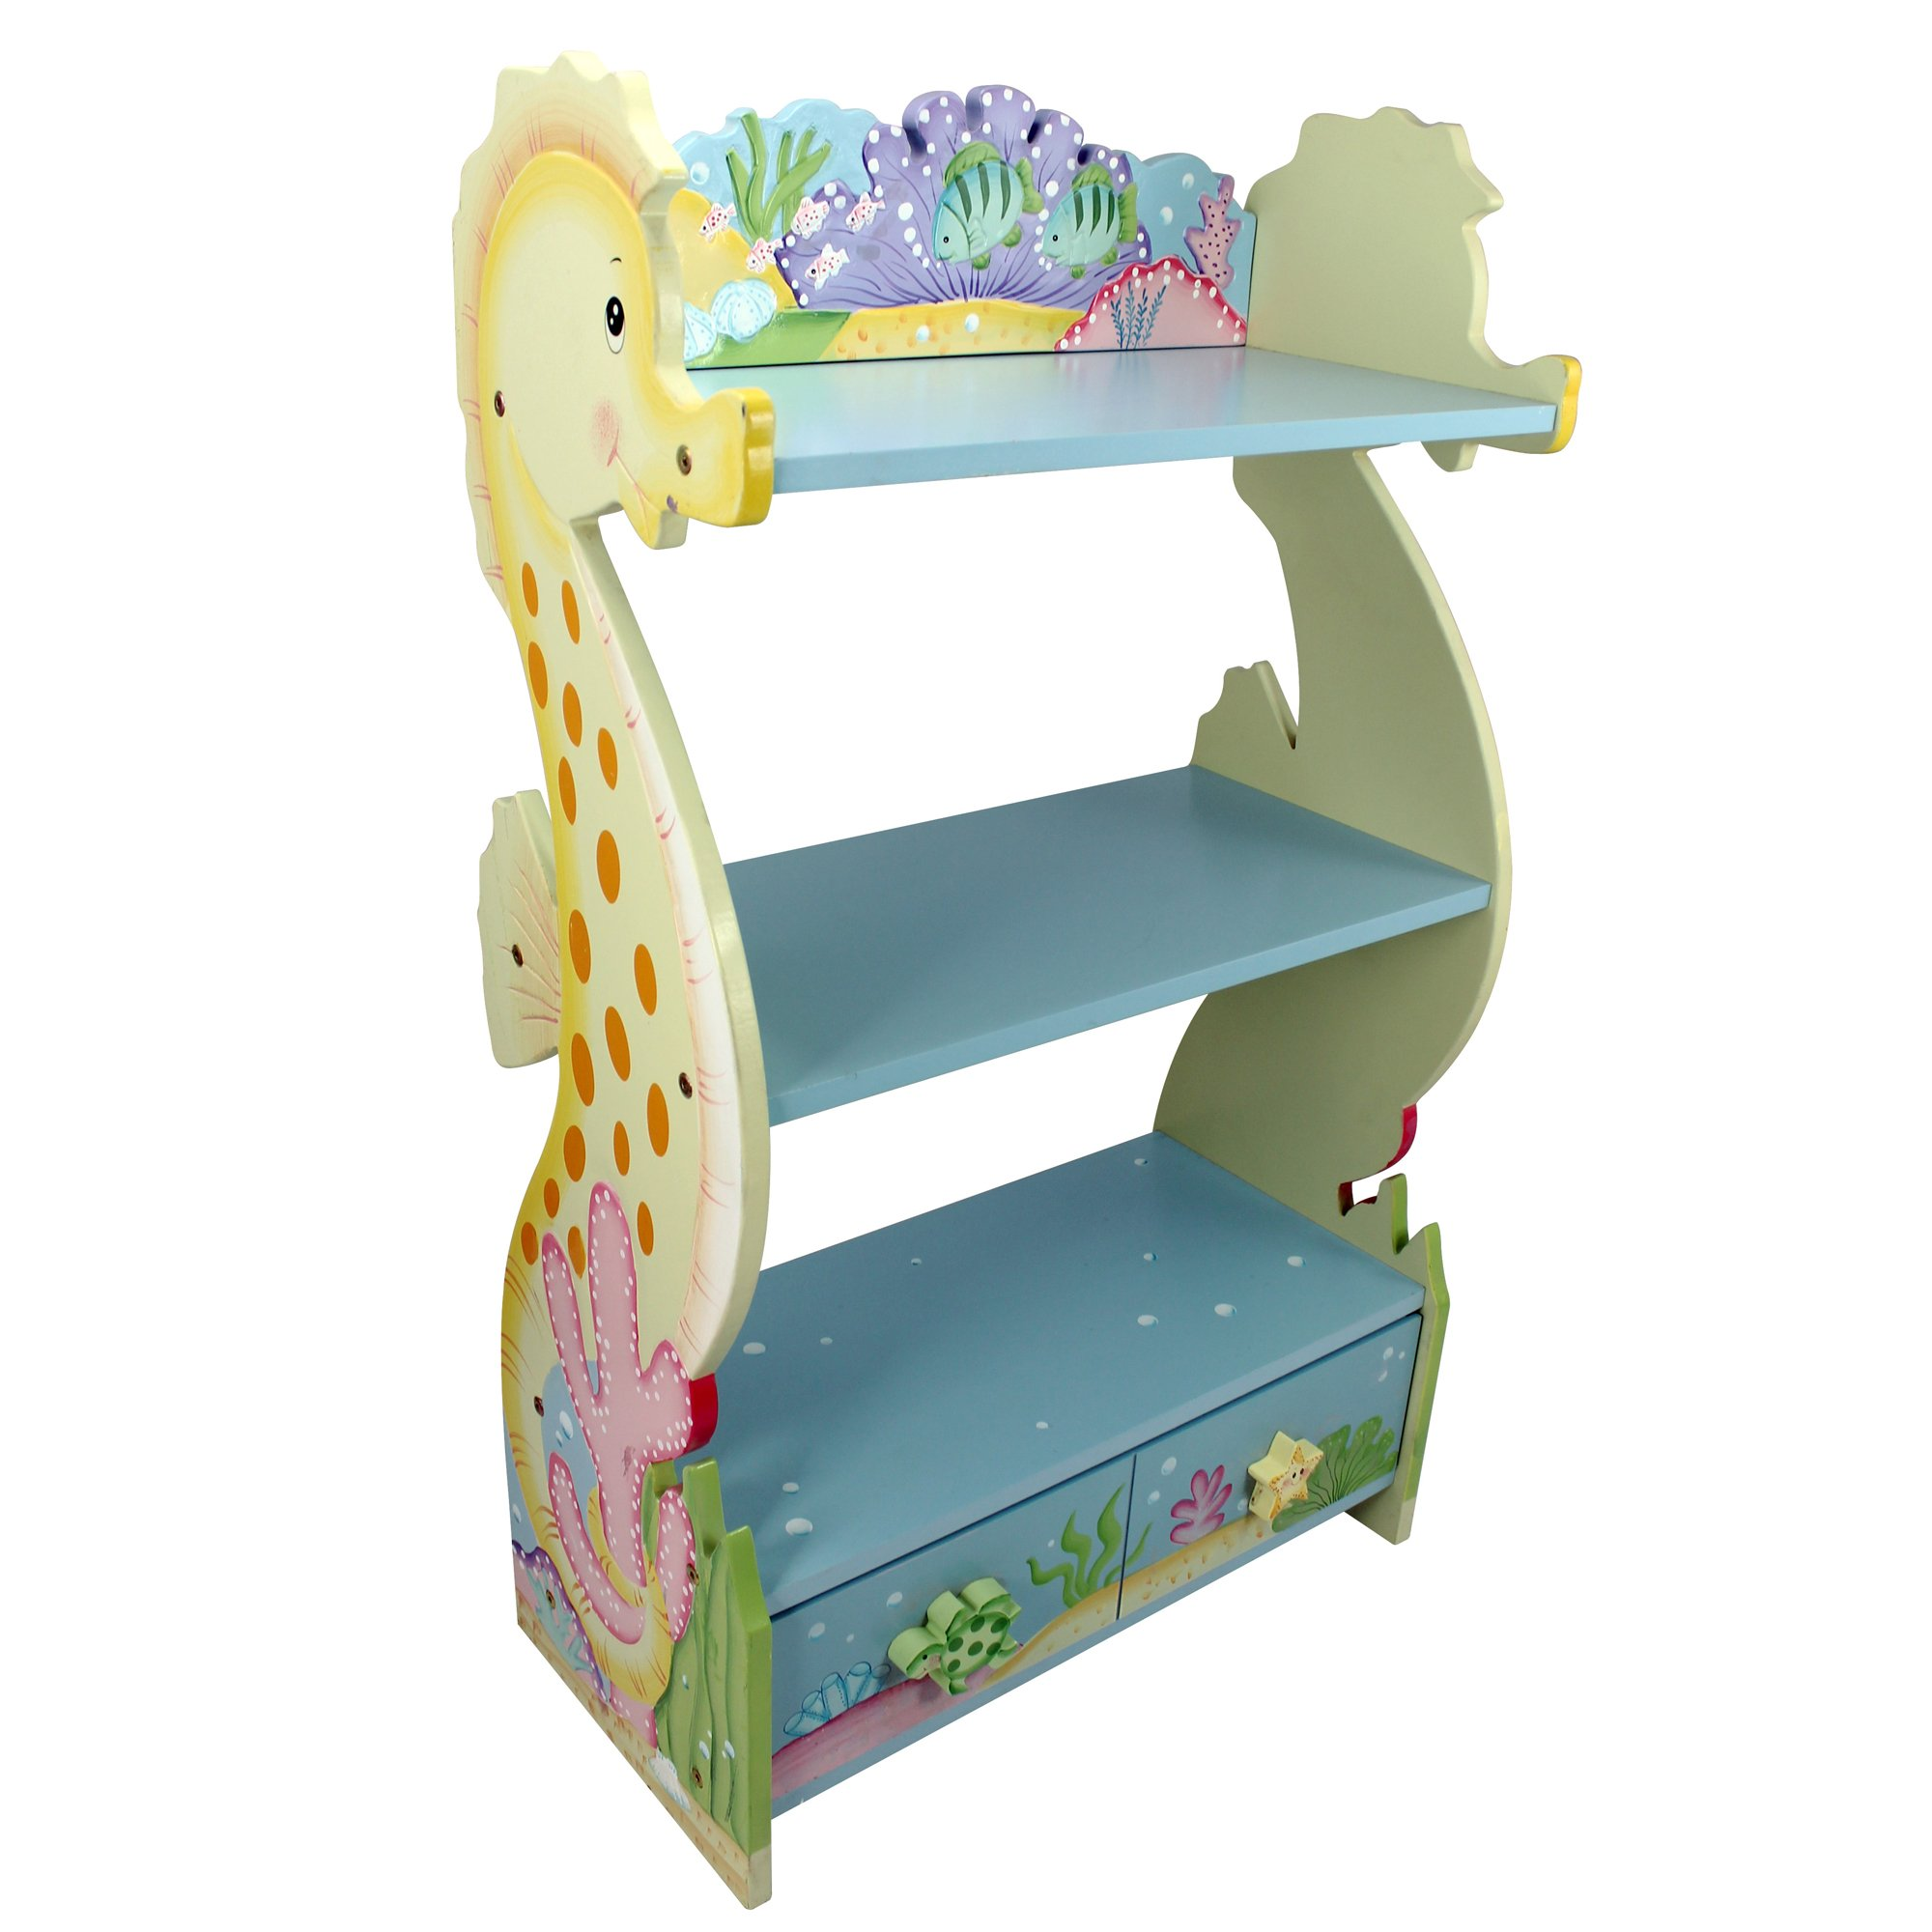 Fantasy Fields - Under the Sea Thematic Kids Wooden Bookcase with Storage | Imagination Inspiring Hand Crafted & Hand Painted Details   Non-Toxic, Lead Free Water-based Paint